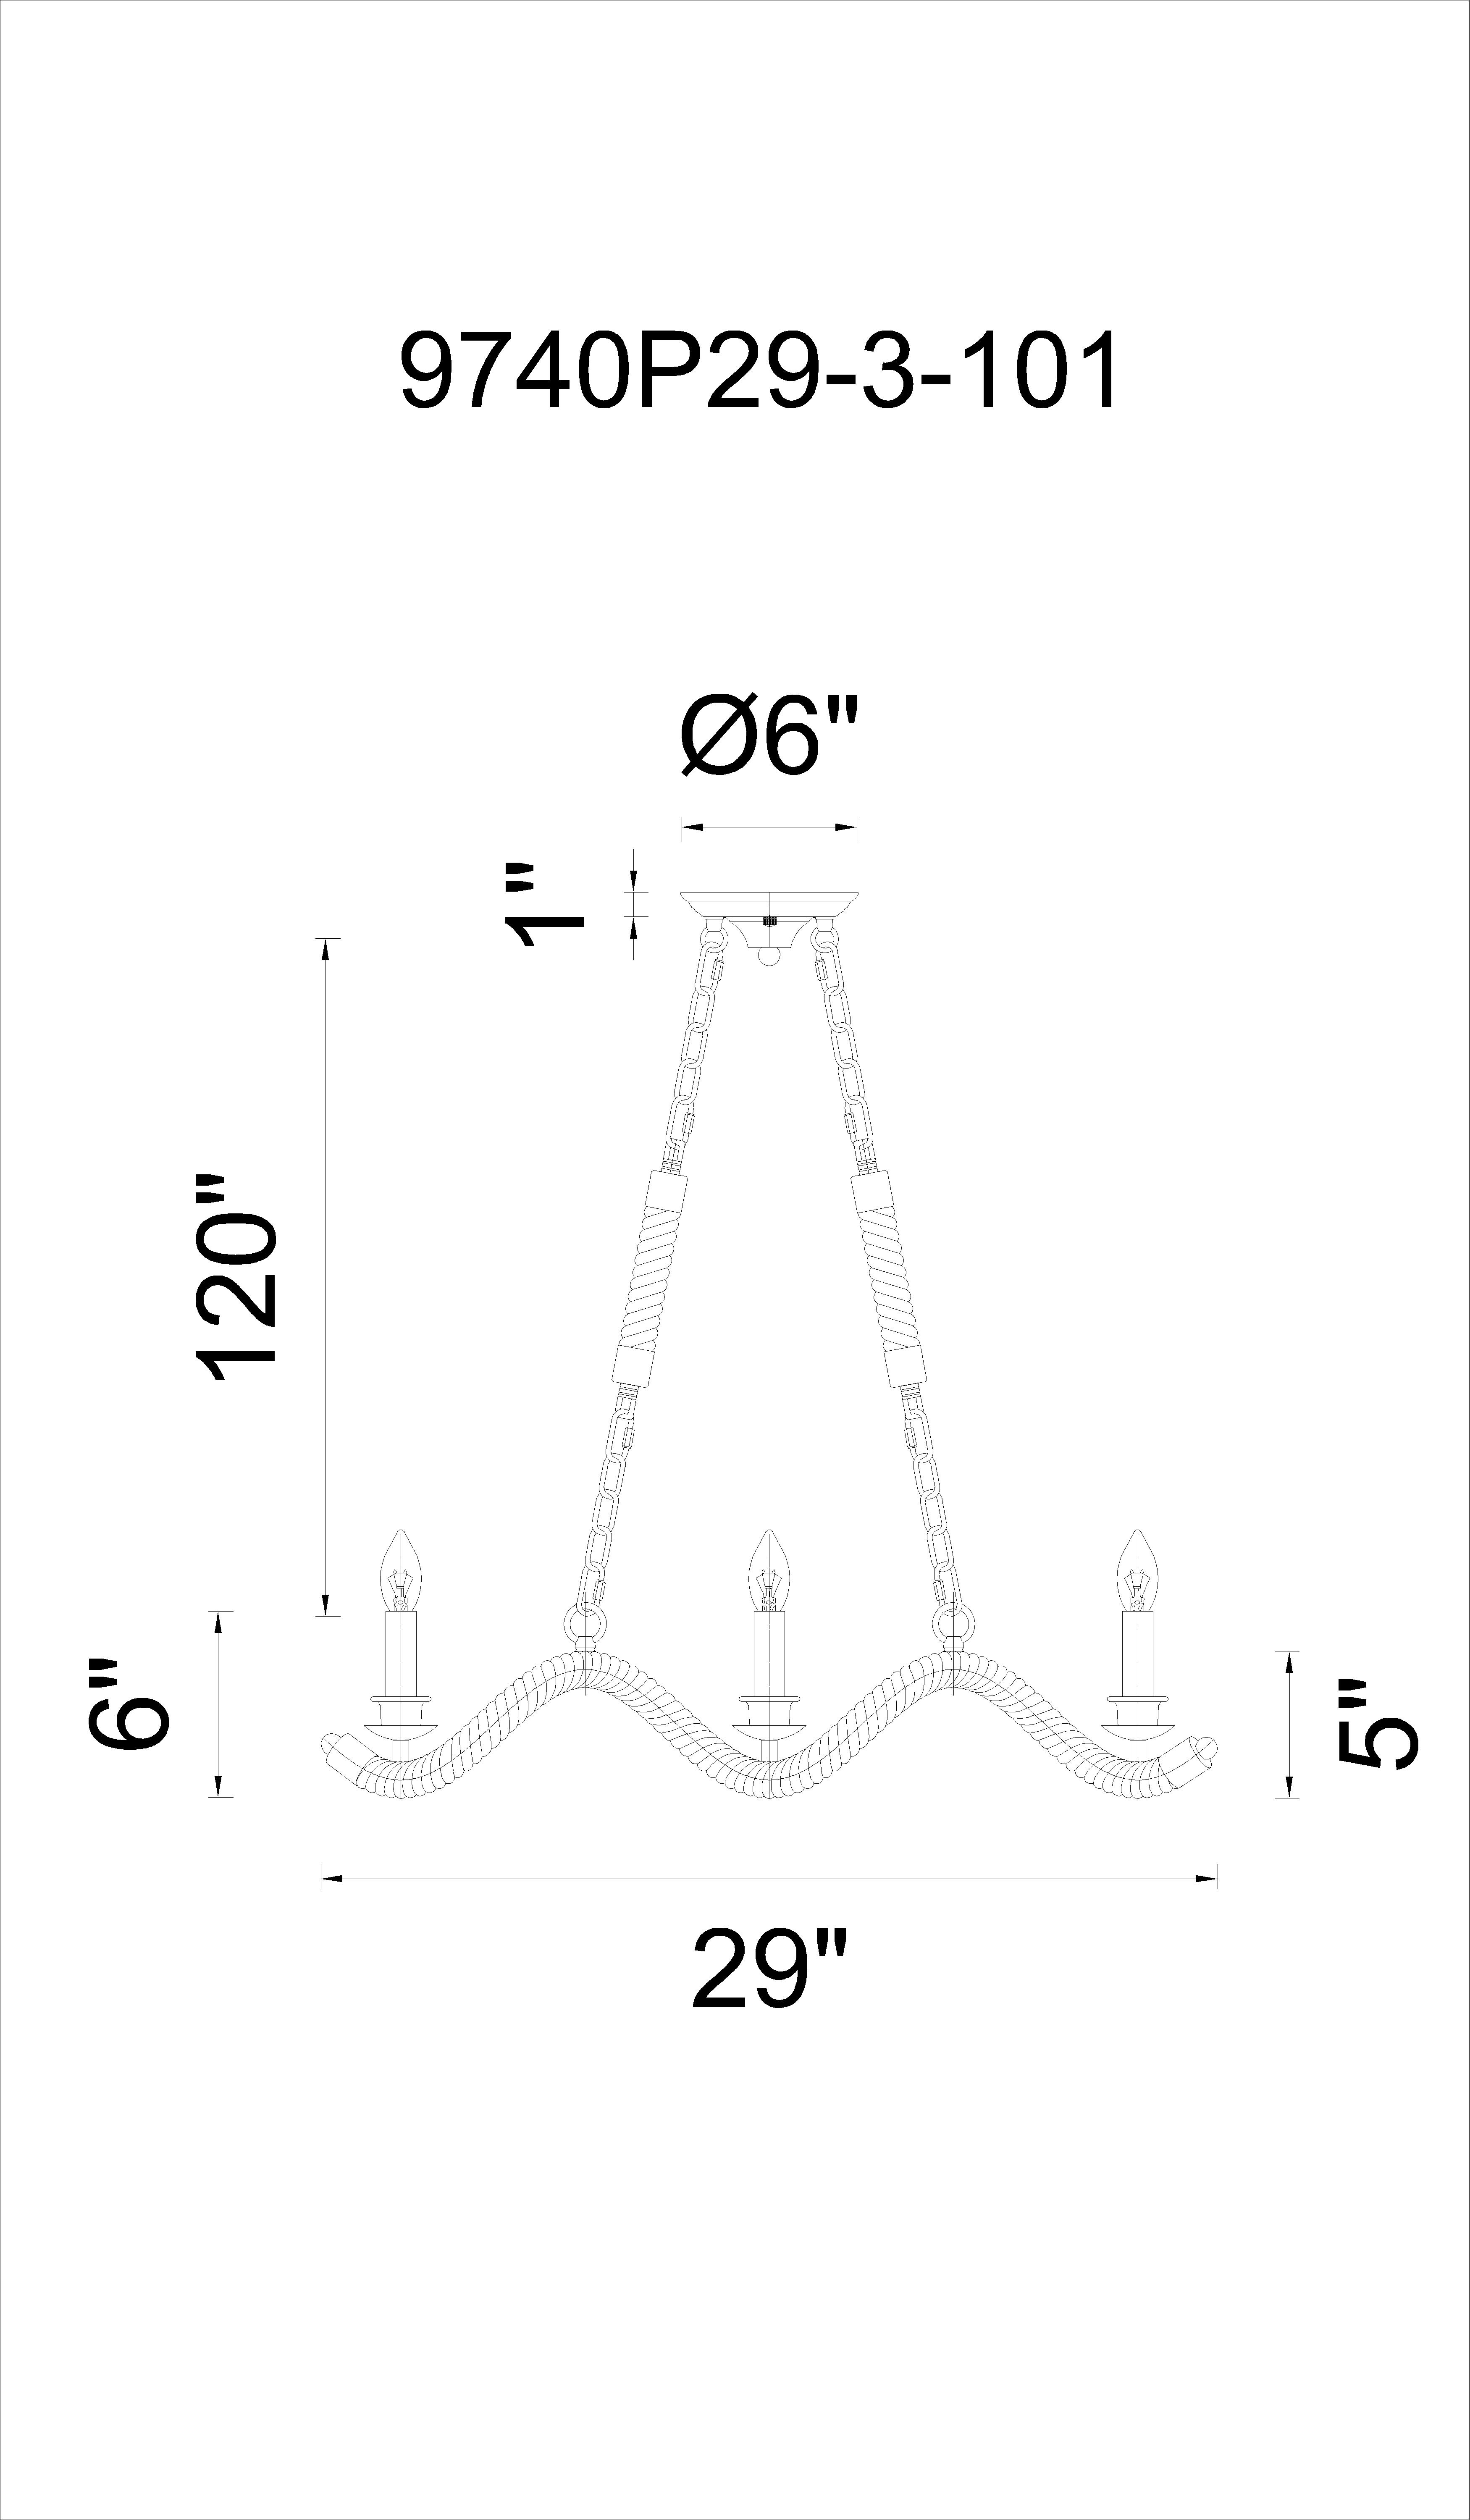 CWI Lighting Padma 3 Light Up Chandelier With Black Finish Model: 9740P29-3-101 Line Drawing